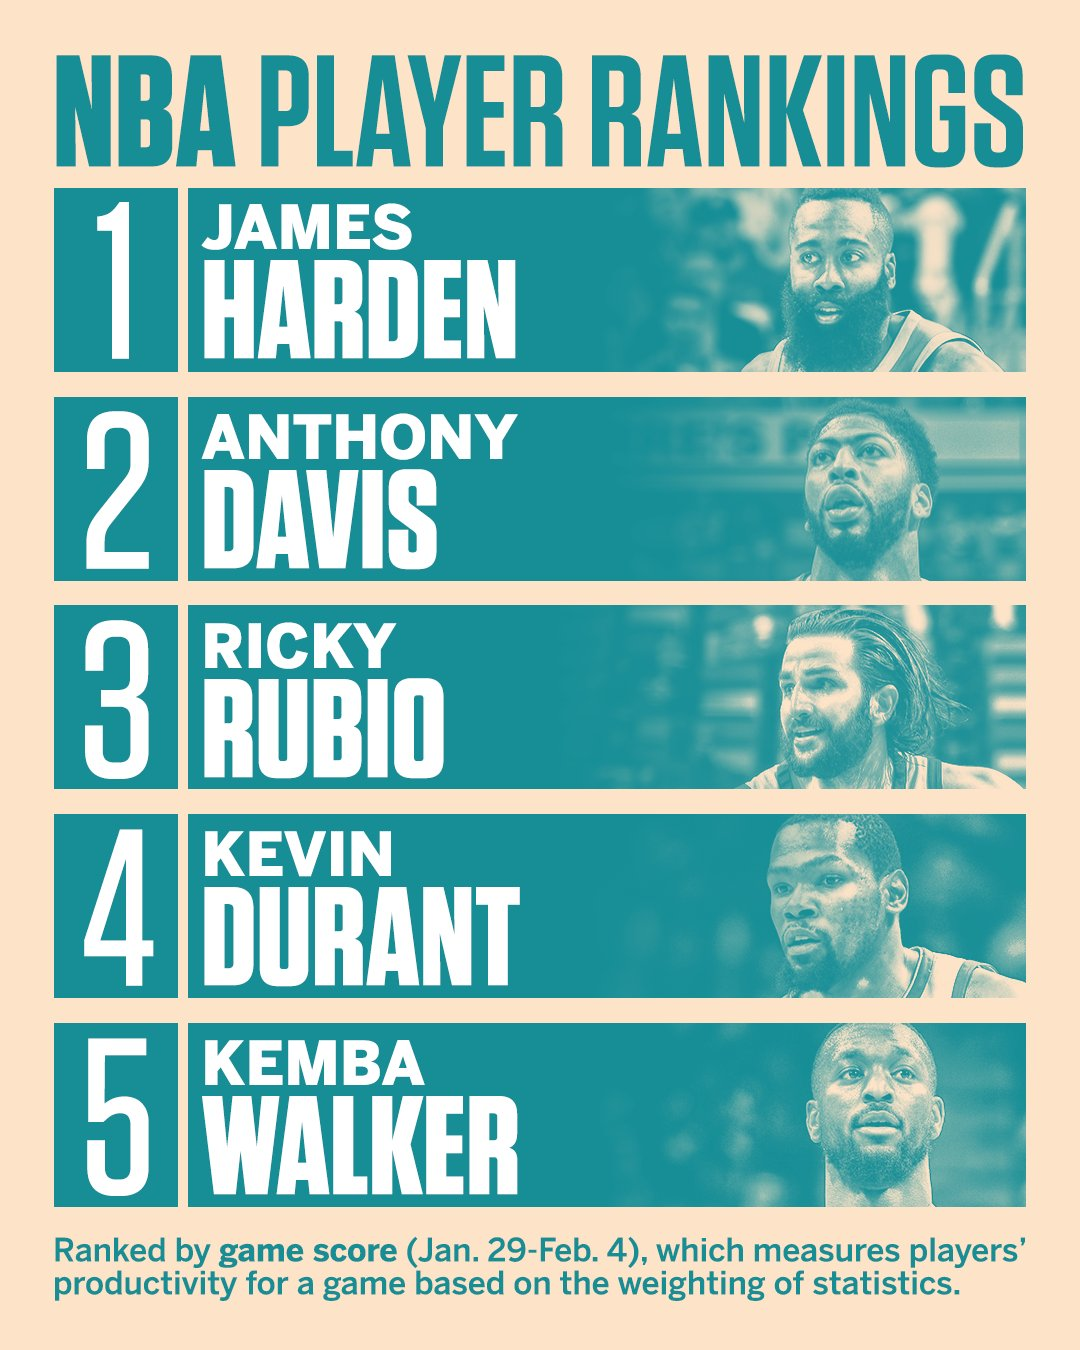 The Beard climbs to the top of our latest weekly player rankings. https://t.co/xhixMMhDTT